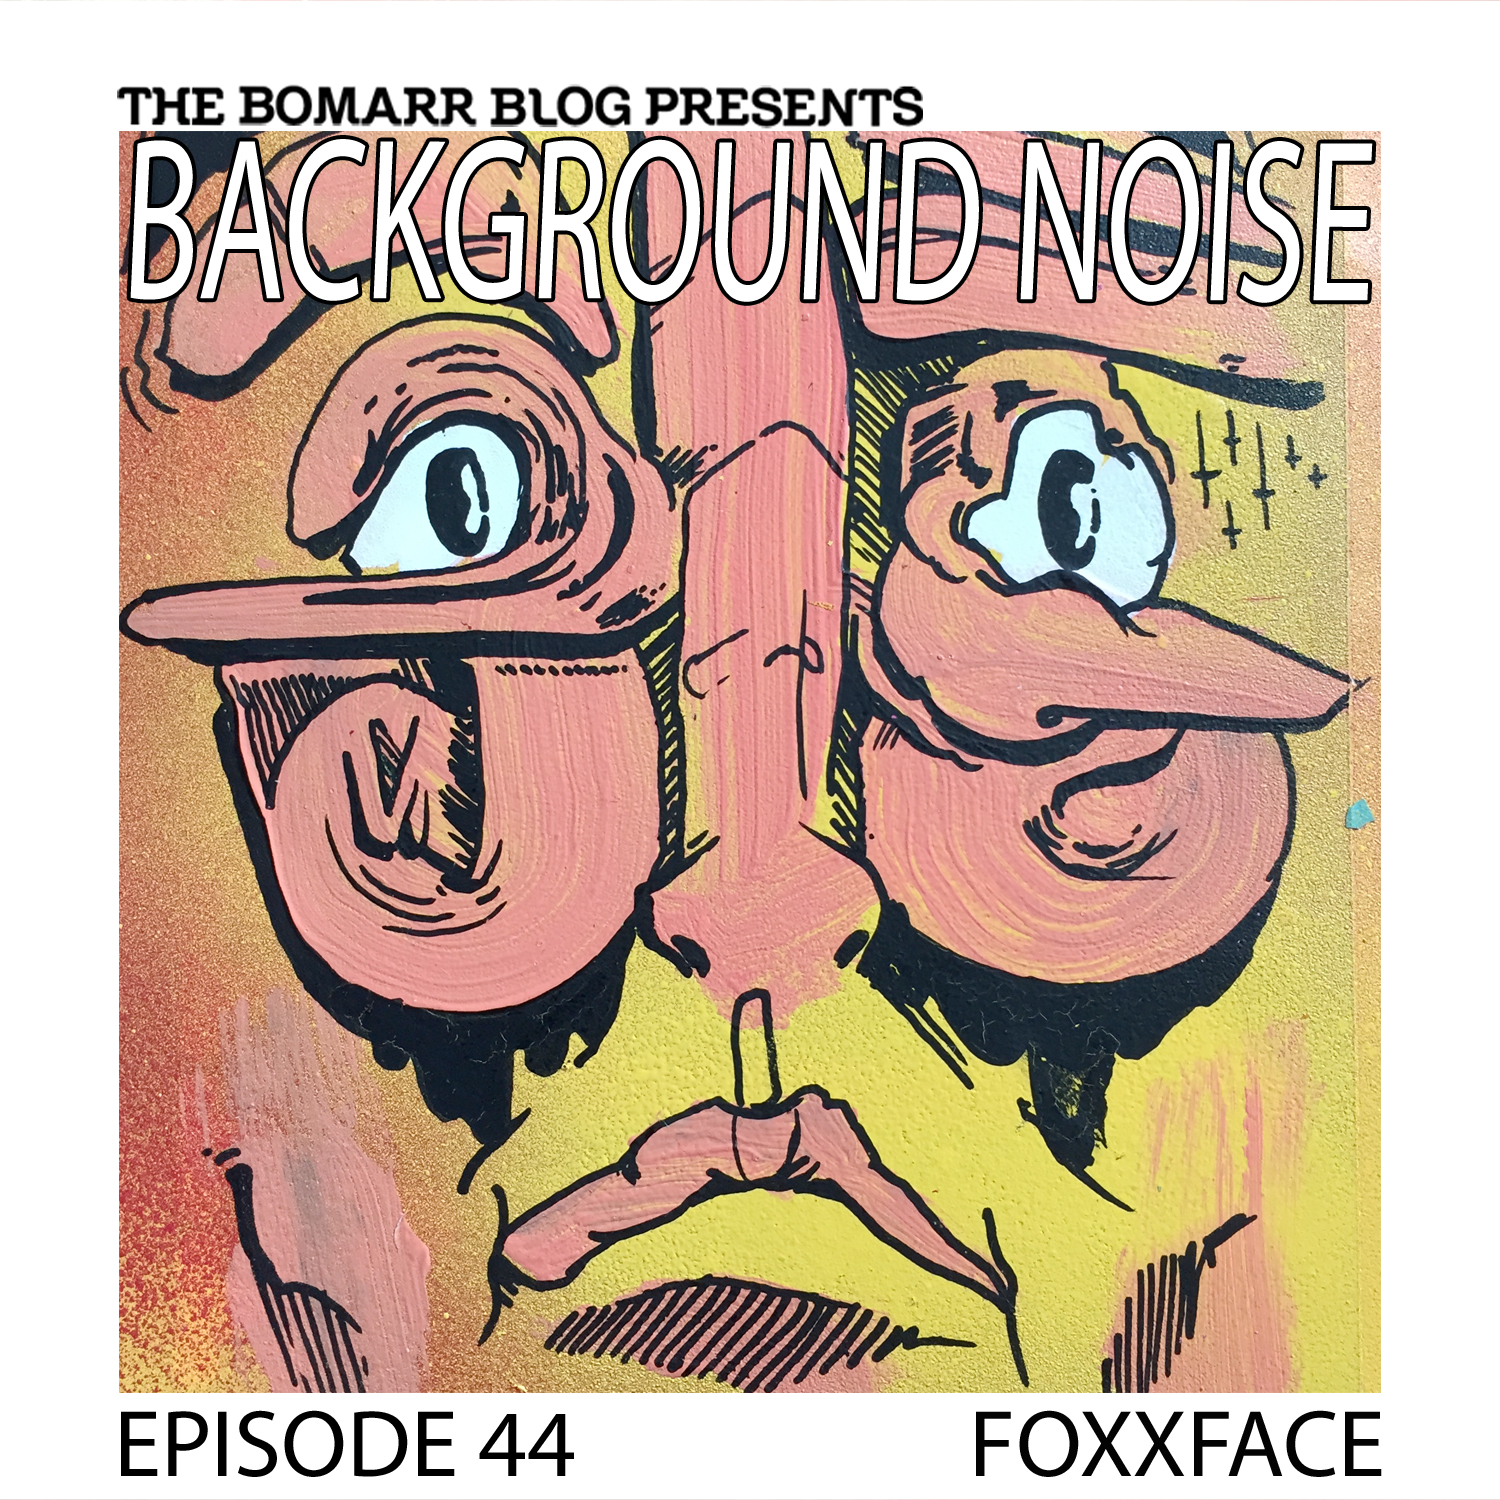 "The ""Background Noise"" podcast series focuses on the music that artists listen to when they work, what music inspires them, or just music they like. This week, in Episode 44, the focus is on New York artist Foxxface.."